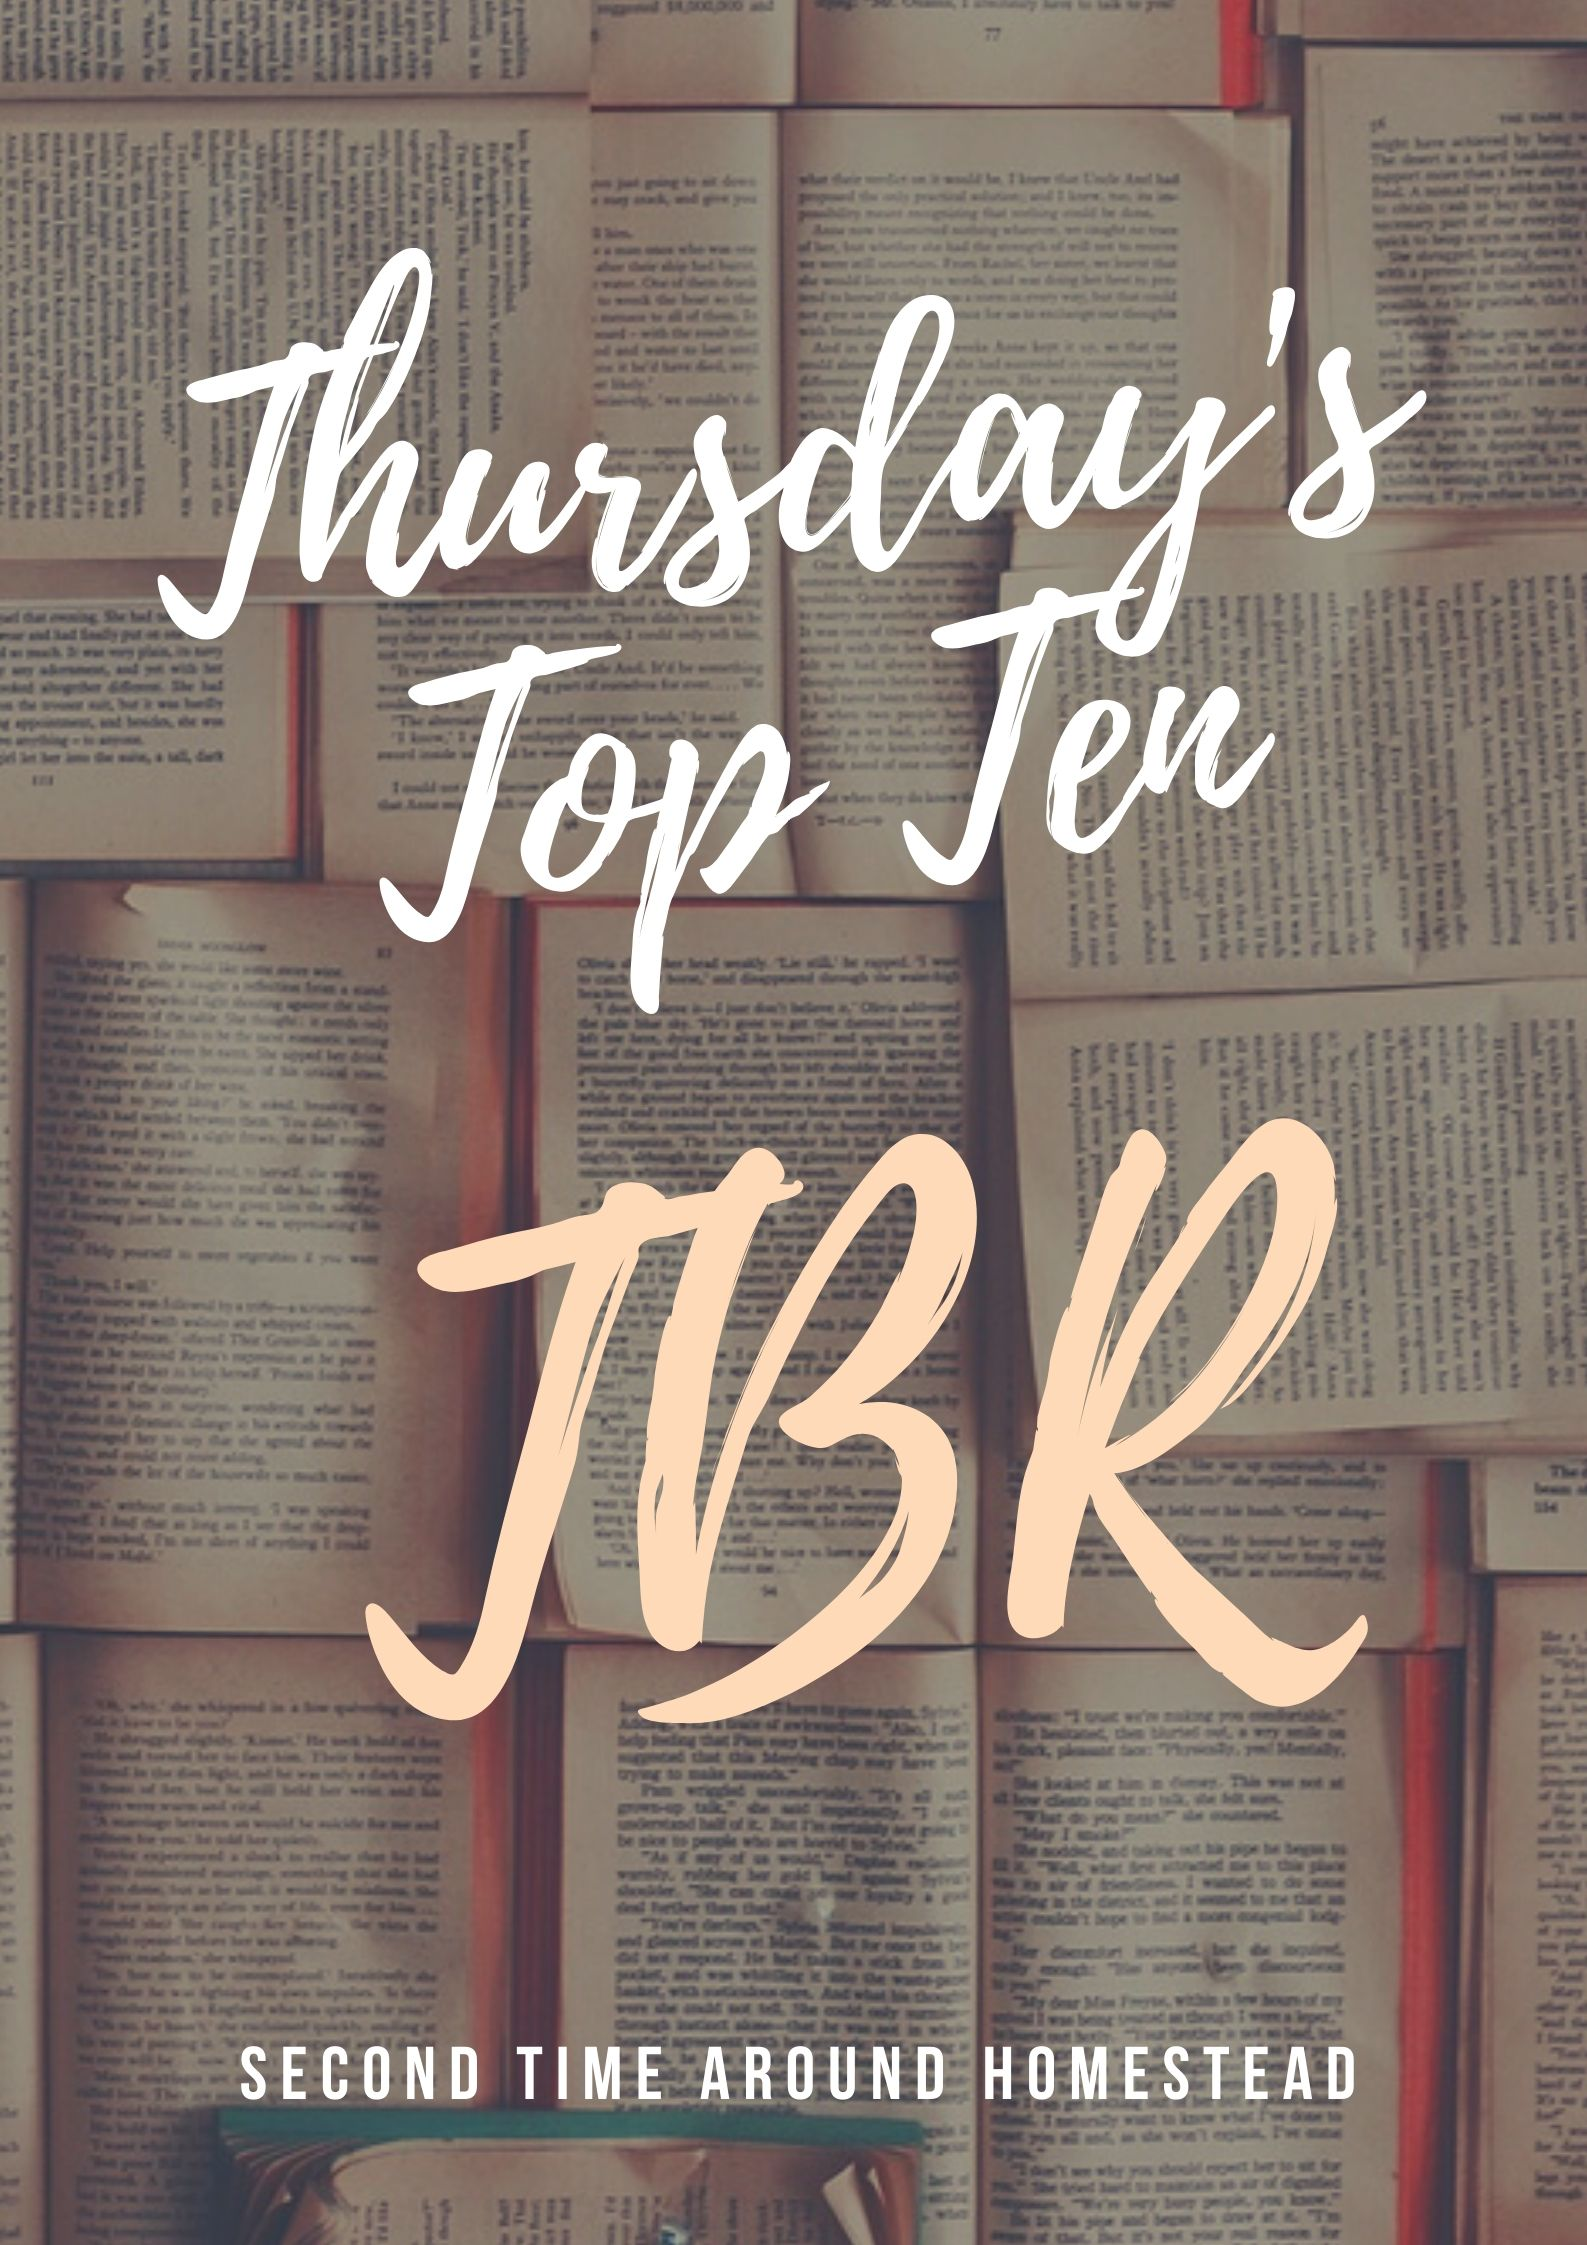 faded book background with the title of Thursday's Top Ten TBR